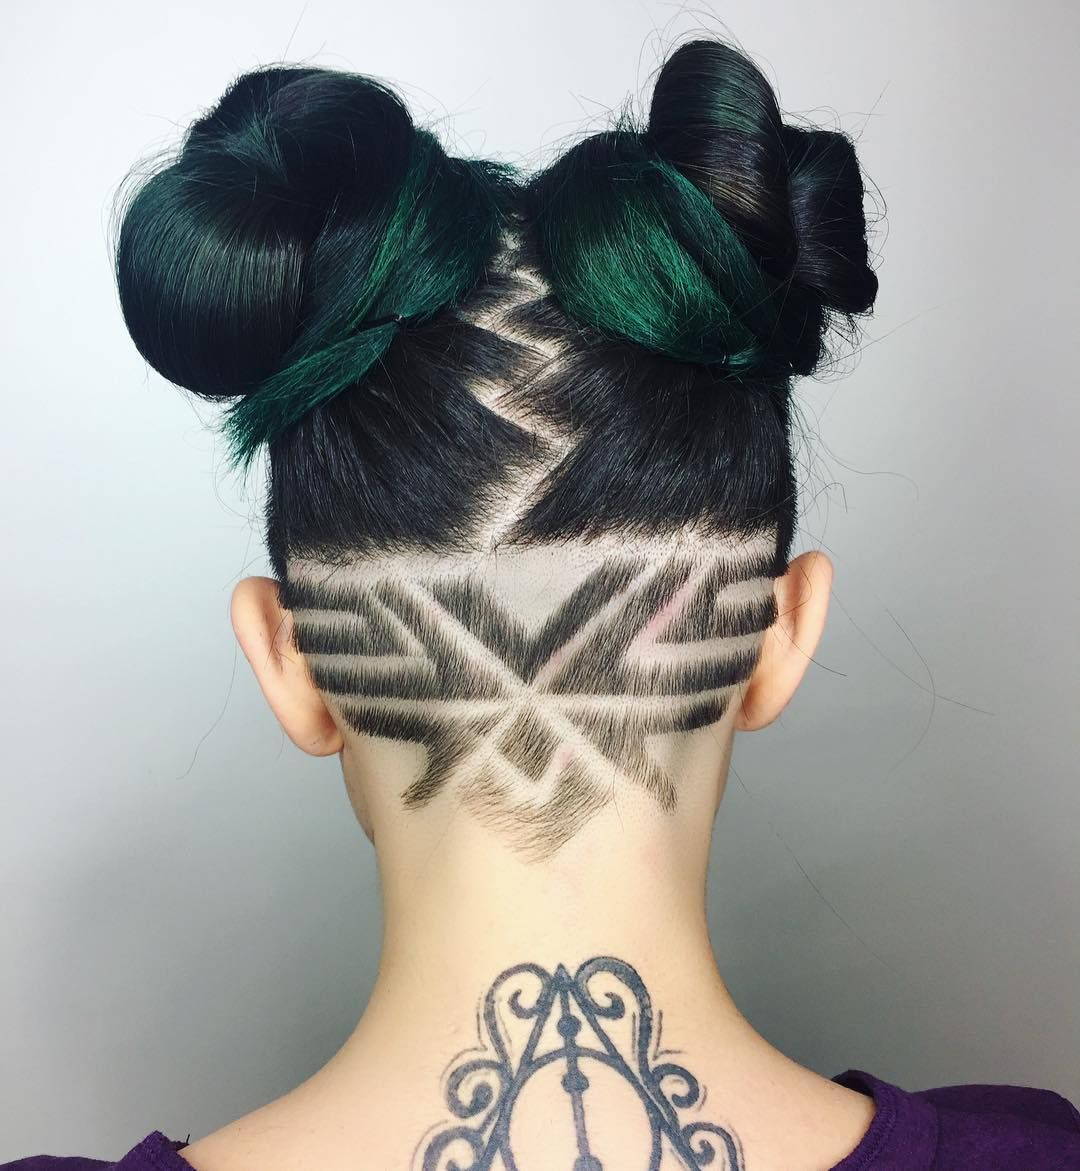 pin by gretchen vaughn on undercut ideas - haircuts and